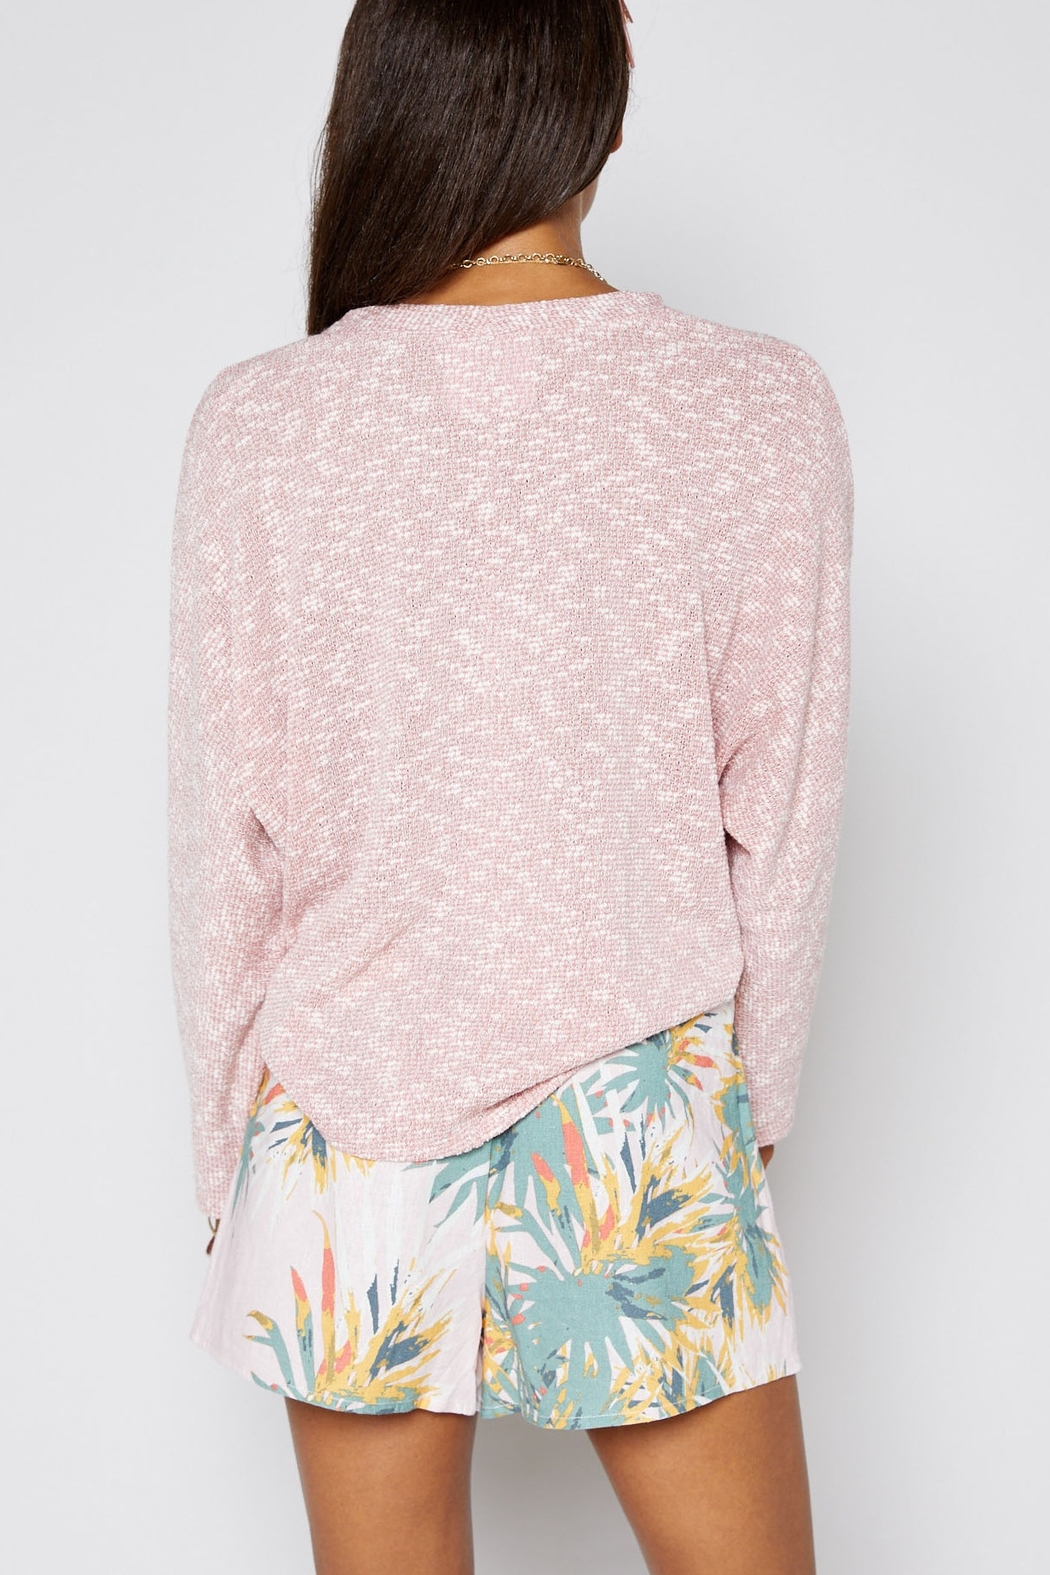 Sadie & Sage Soft-knit Tie Top - Back Cropped Image